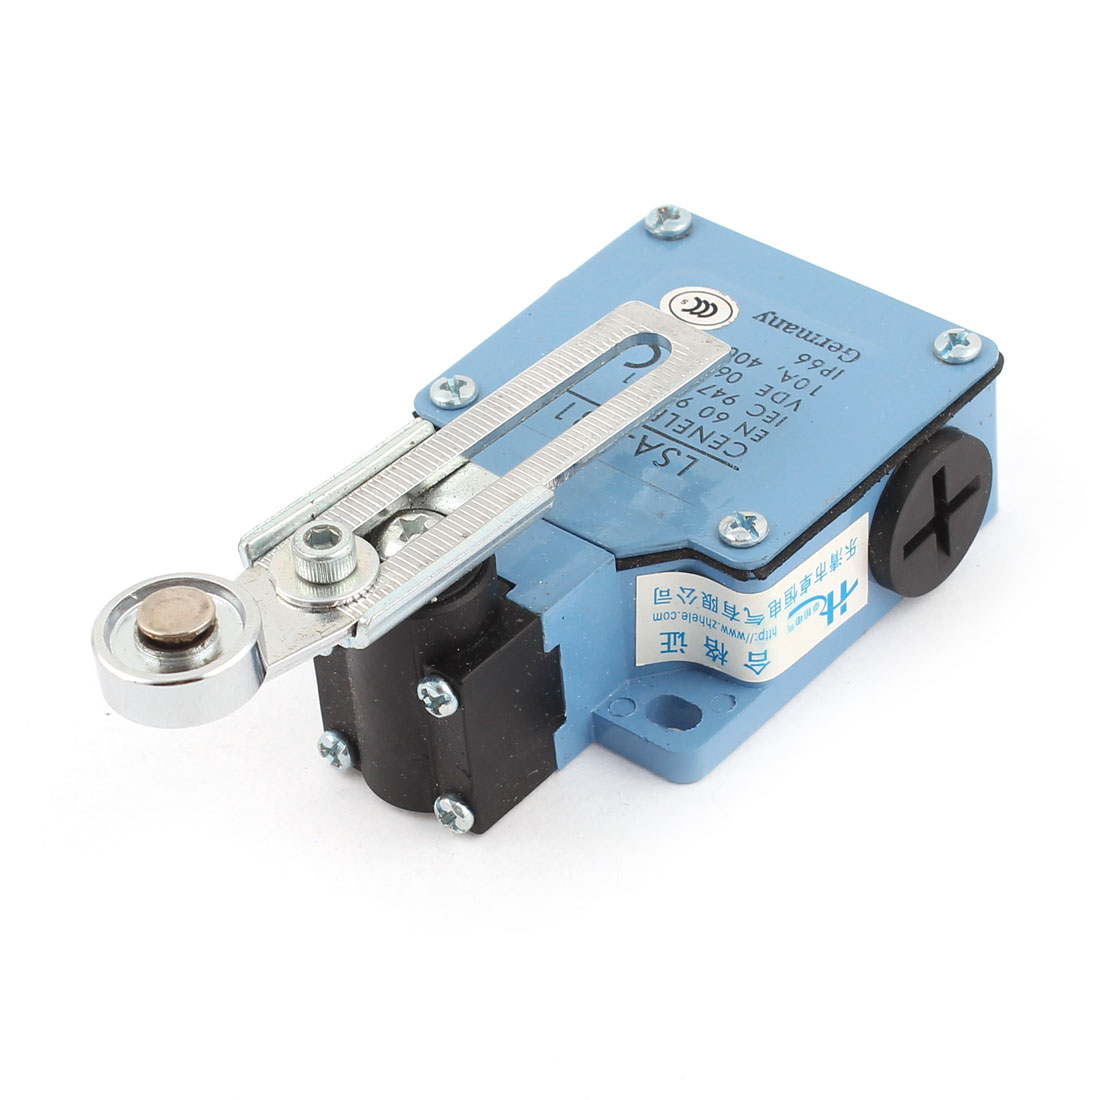 LSA-031 SPDT Momentary Rotary Adjustable Roller Lever Limit Switch AC 400V 10A